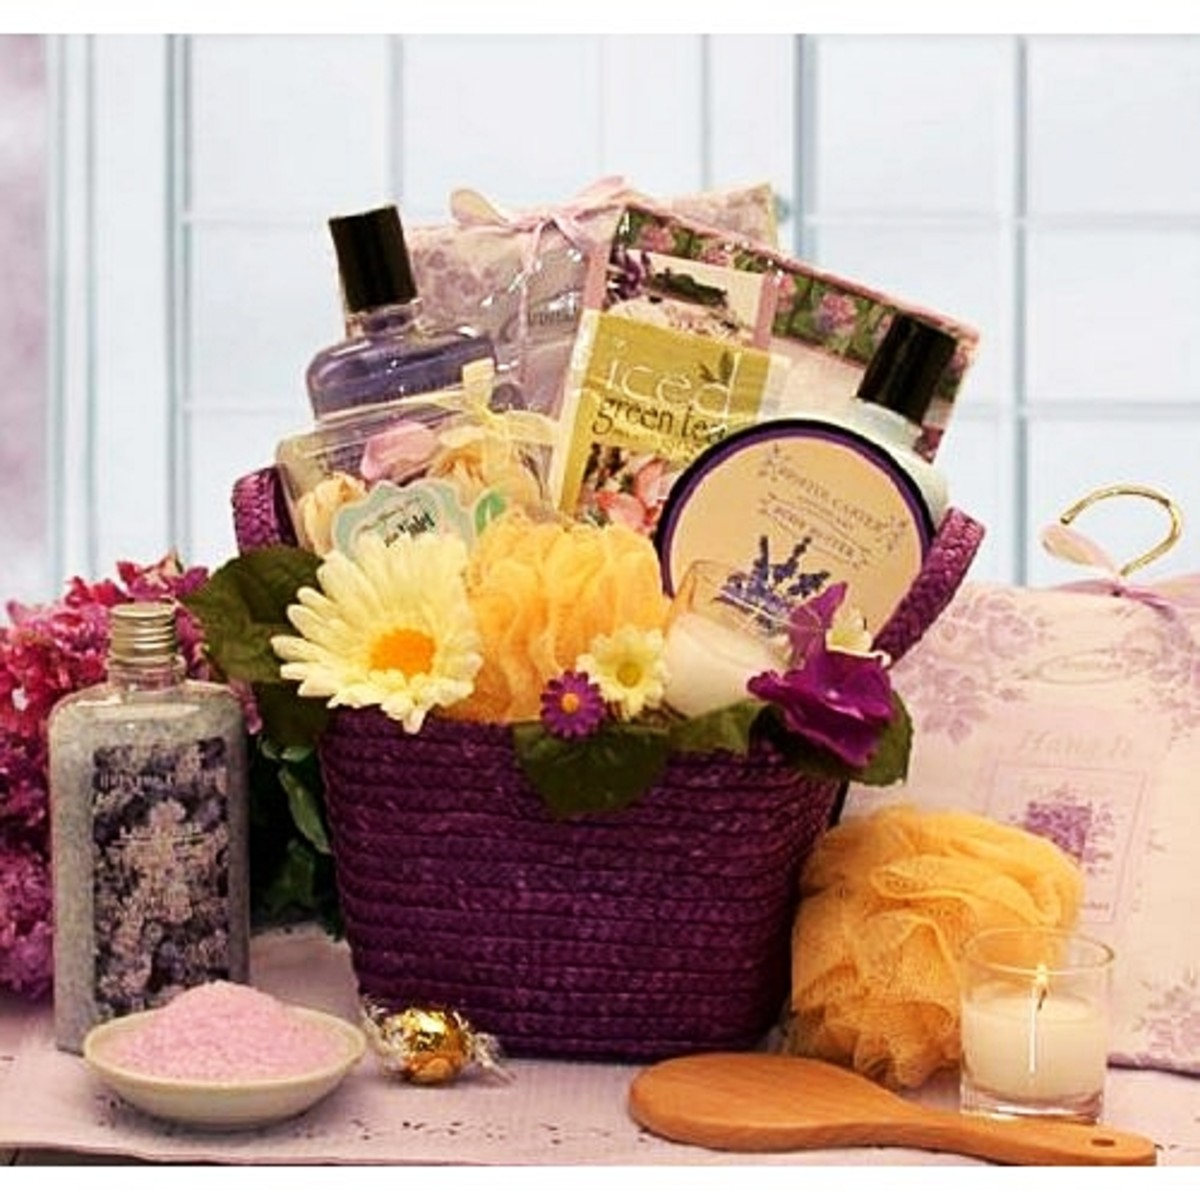 2013 Best Gifts for Mothers - Gift Ideas under $100 dollars, by Rosie2010, photo source Amazon.com